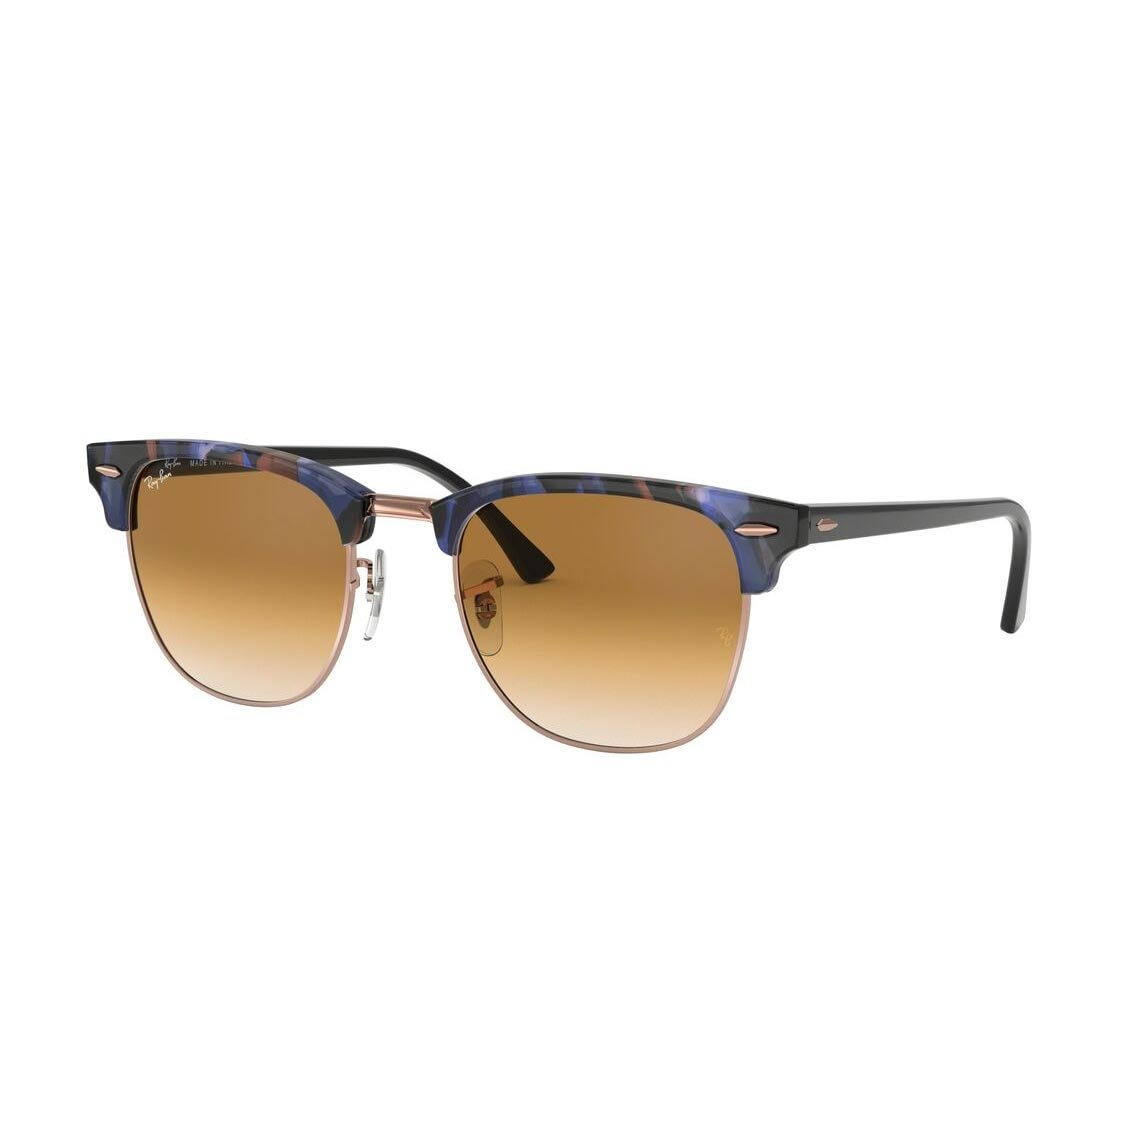 Ray-Ban Clubmaster Fleck  RB3016 125651 5121